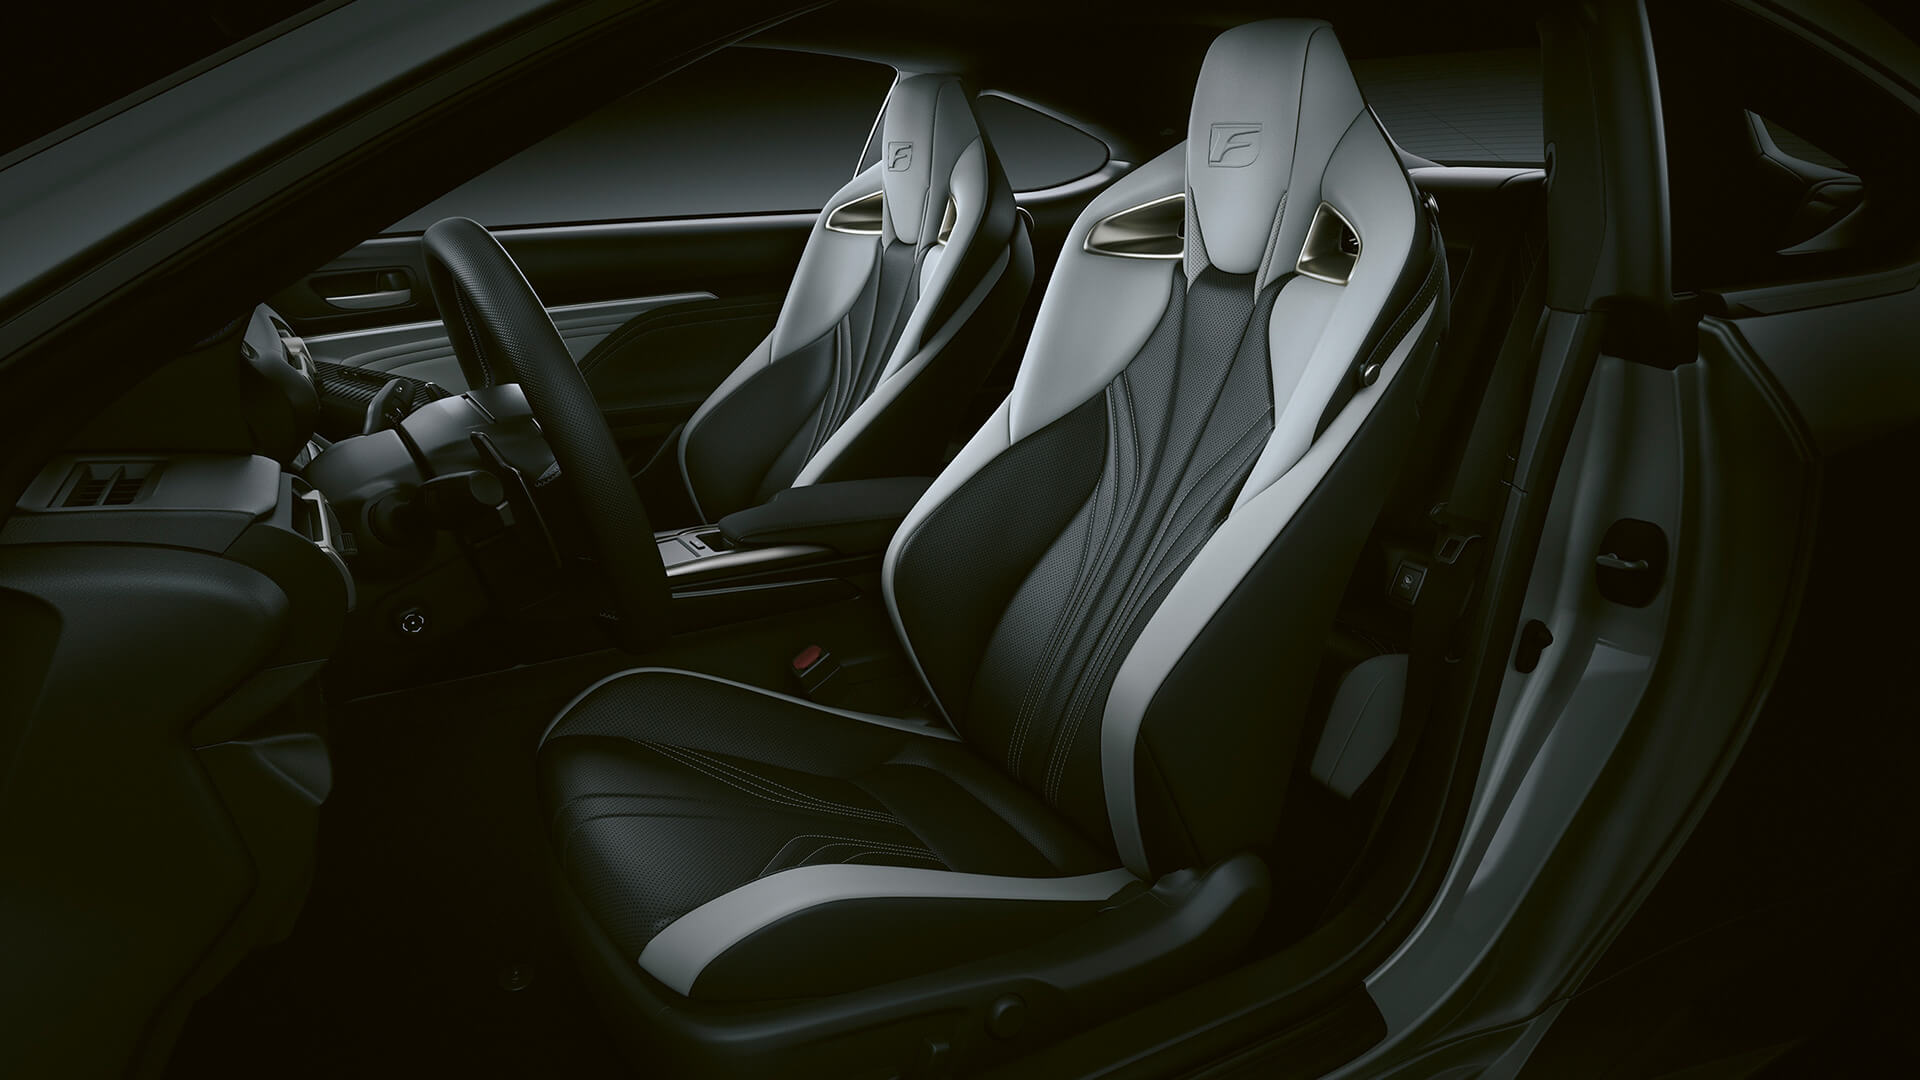 hotspot 1920x1080 leather sports seats